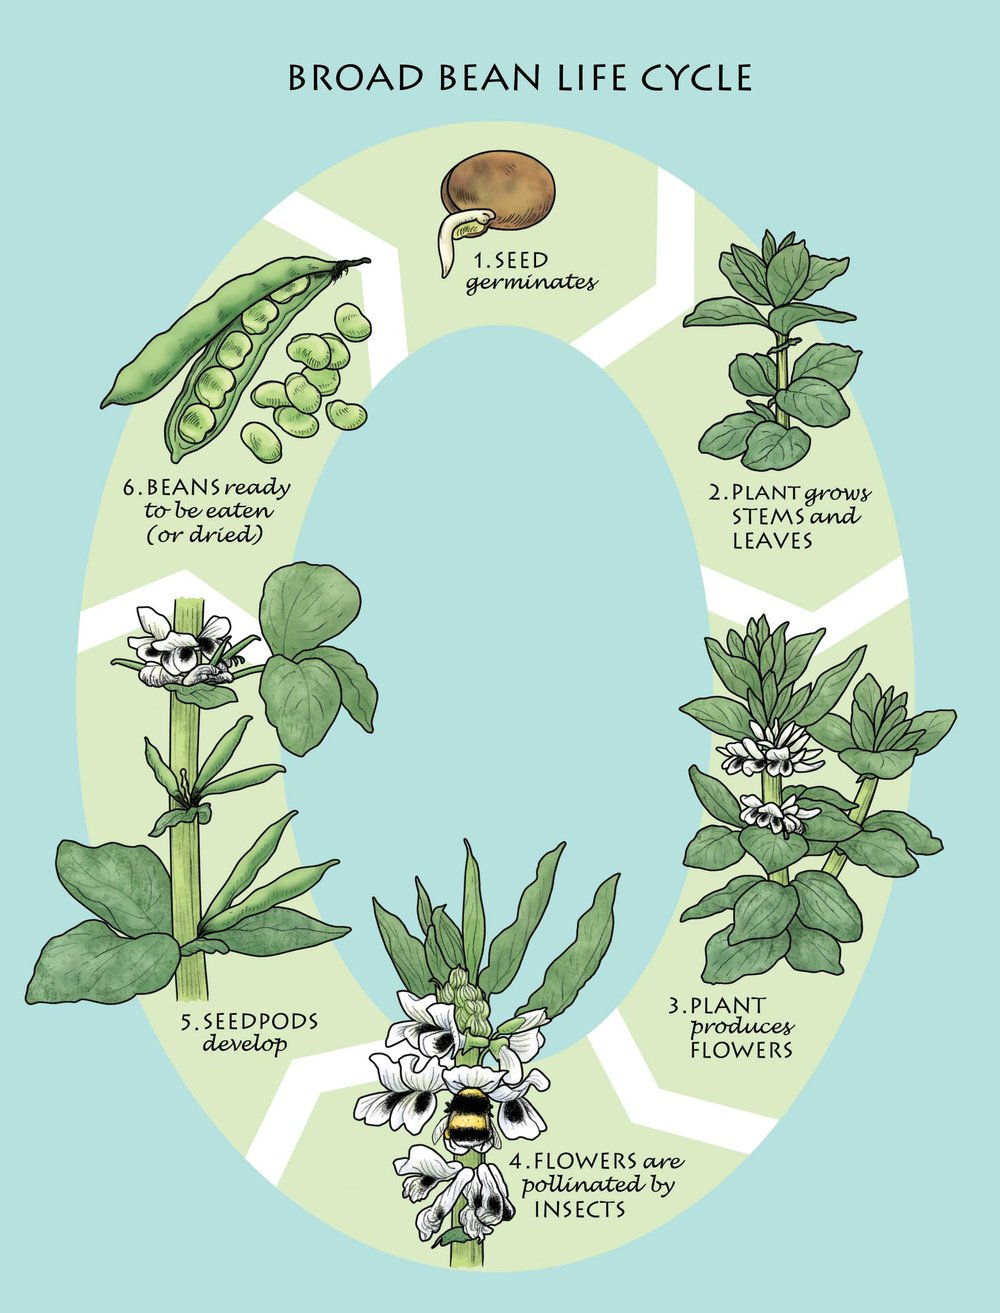 Broad Bean Life Cycle